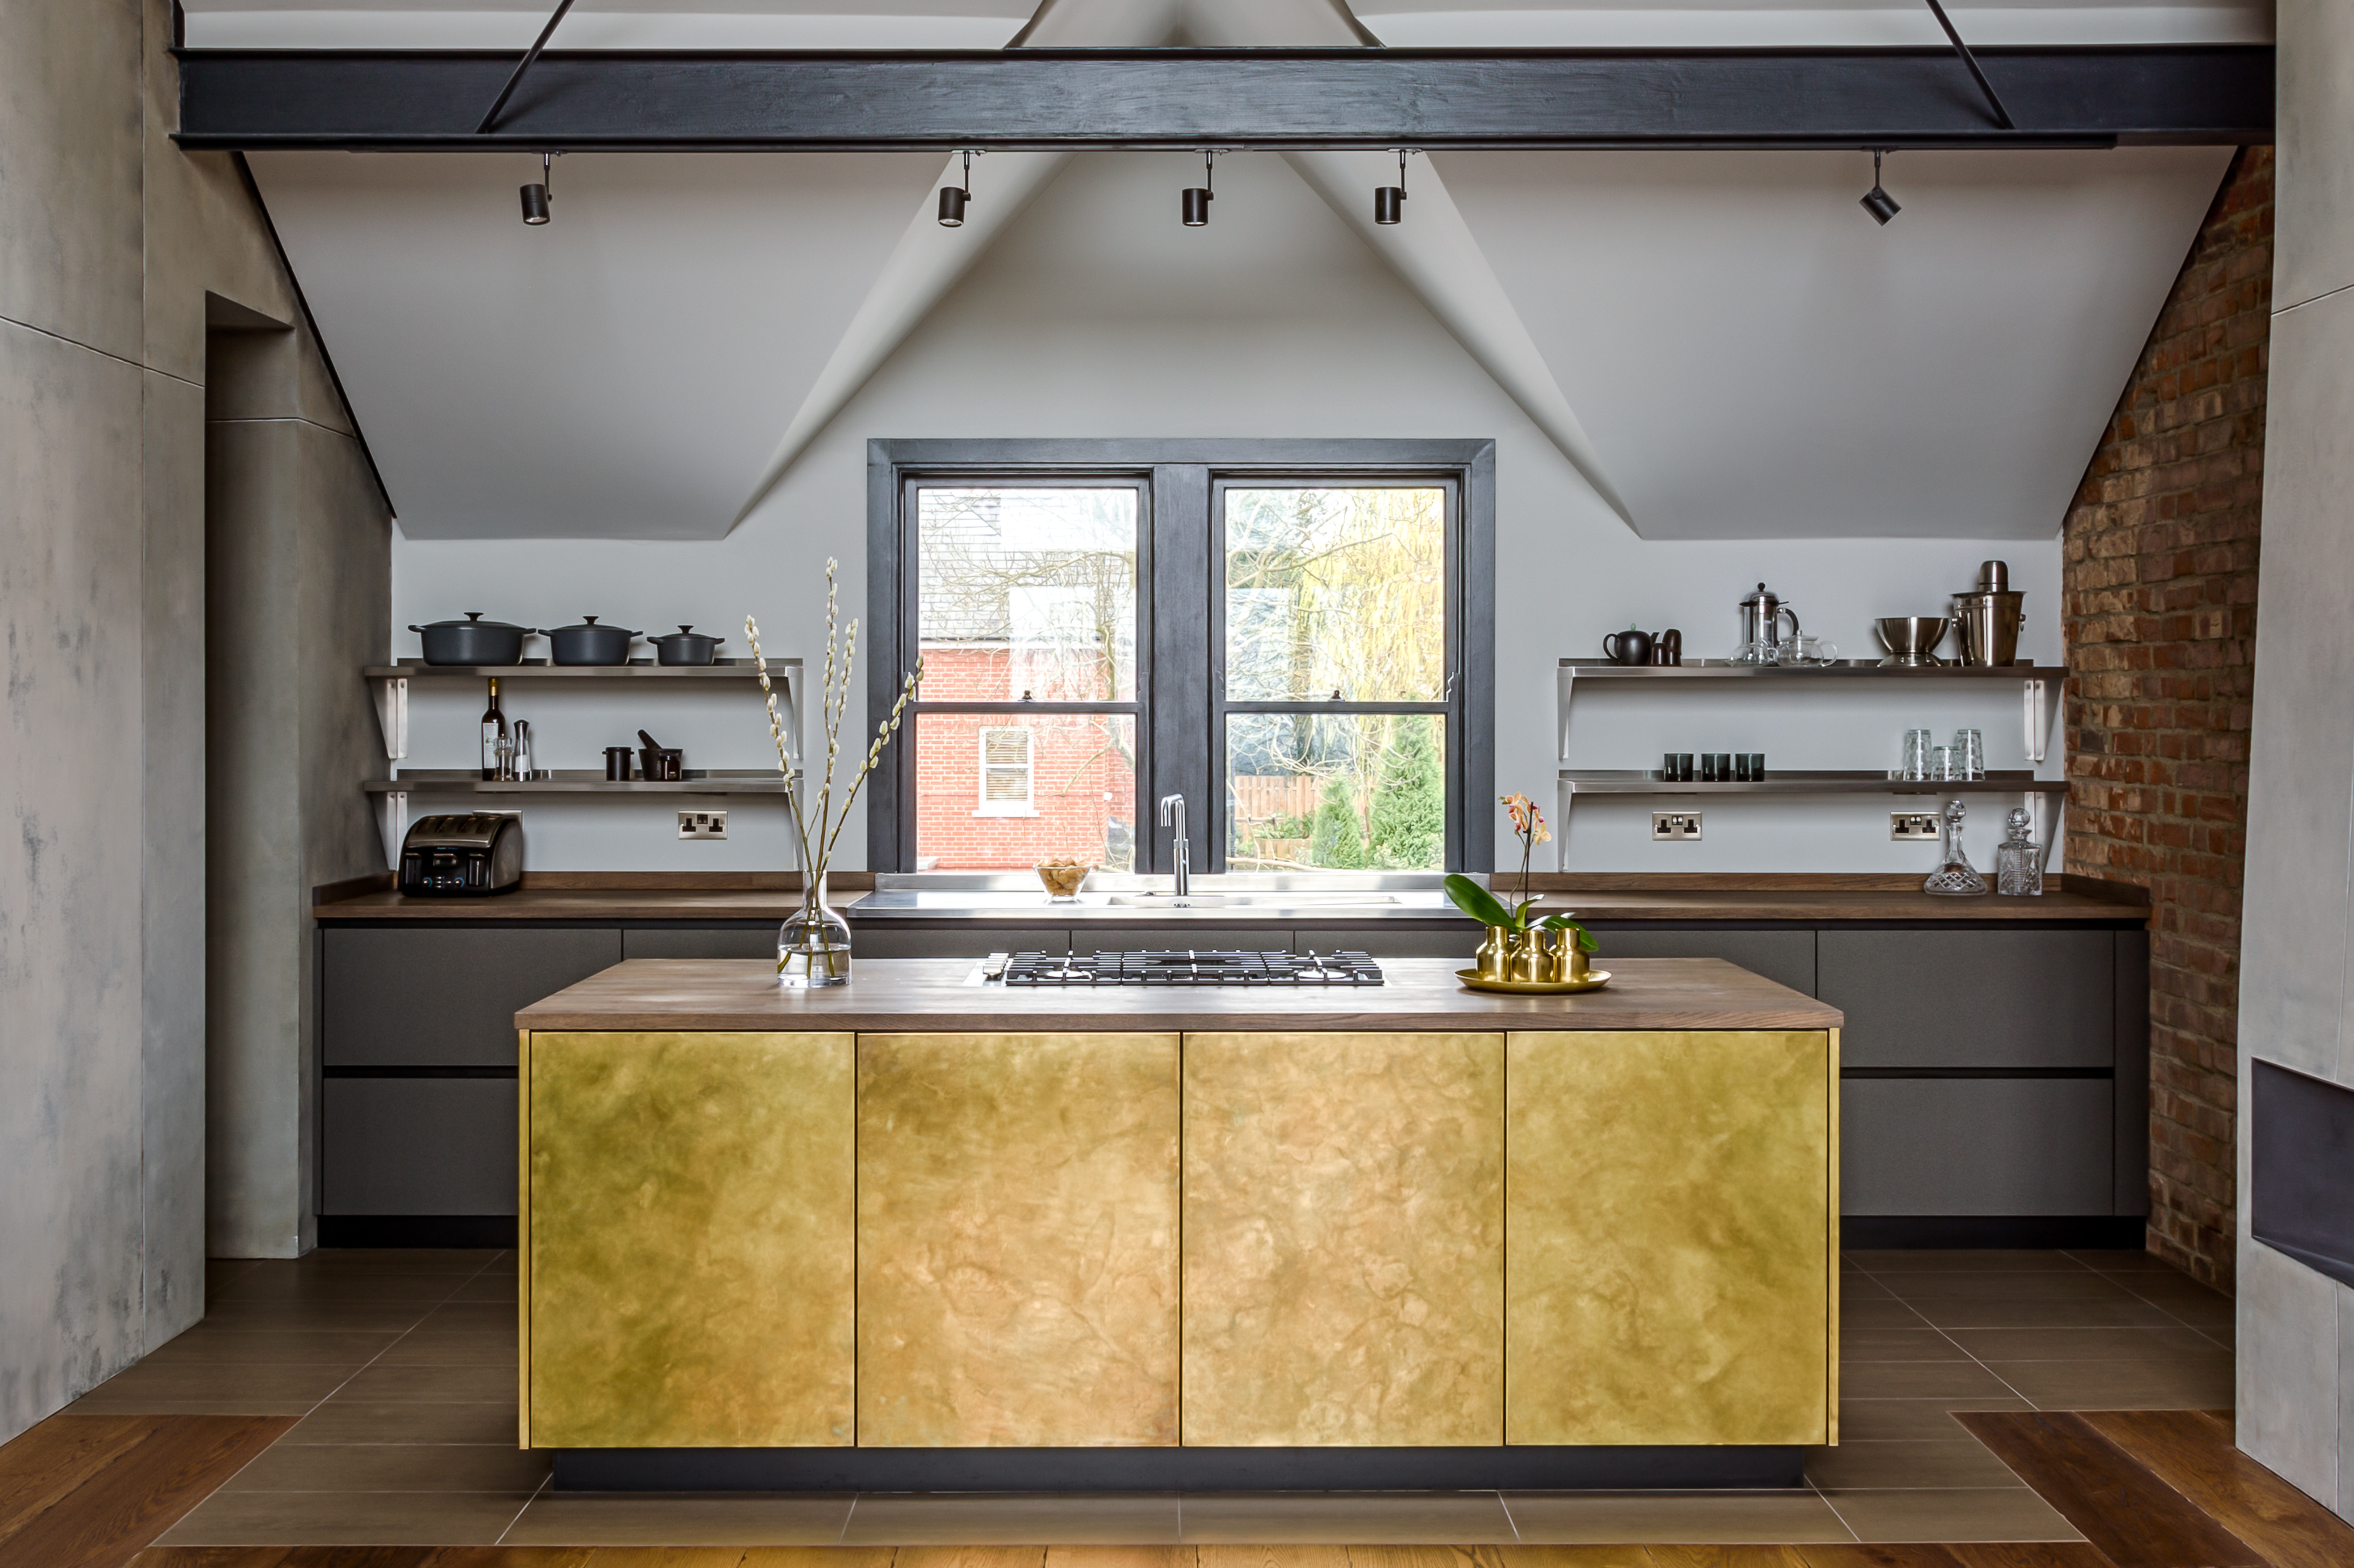 Form 6 Burnished Brass Sola Kitchens Sola Kitchens